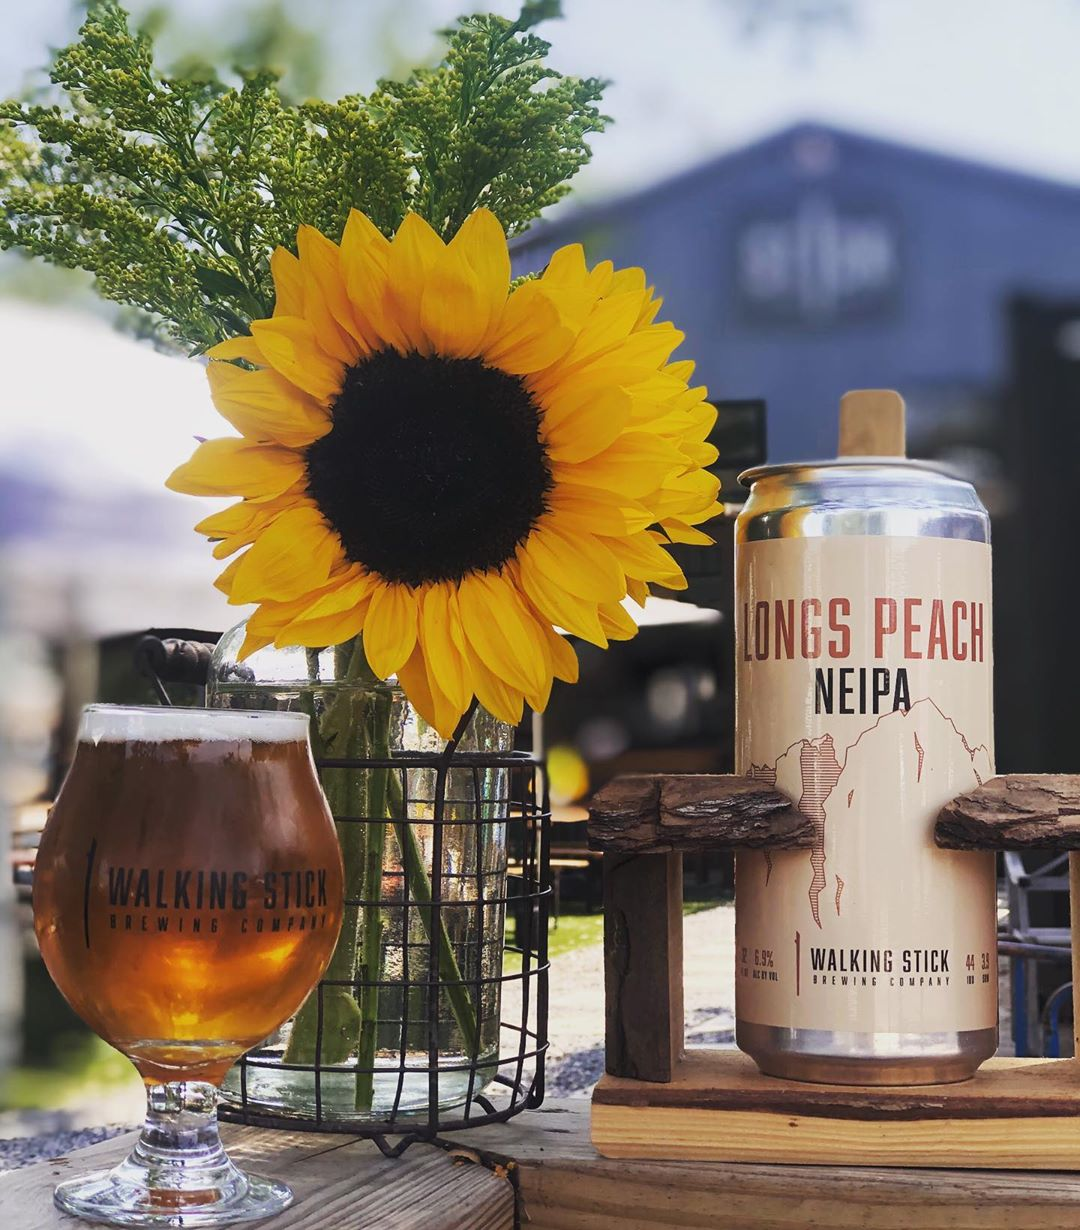 For here or to-go🌞☀️🌻  Open daily 3-10pm and weekends 12-10pm🍻  #patioweather #dontsticktowhatyouknow #supportlocal #savetxbreweries #htxcraftbeer #drinkmorebeer